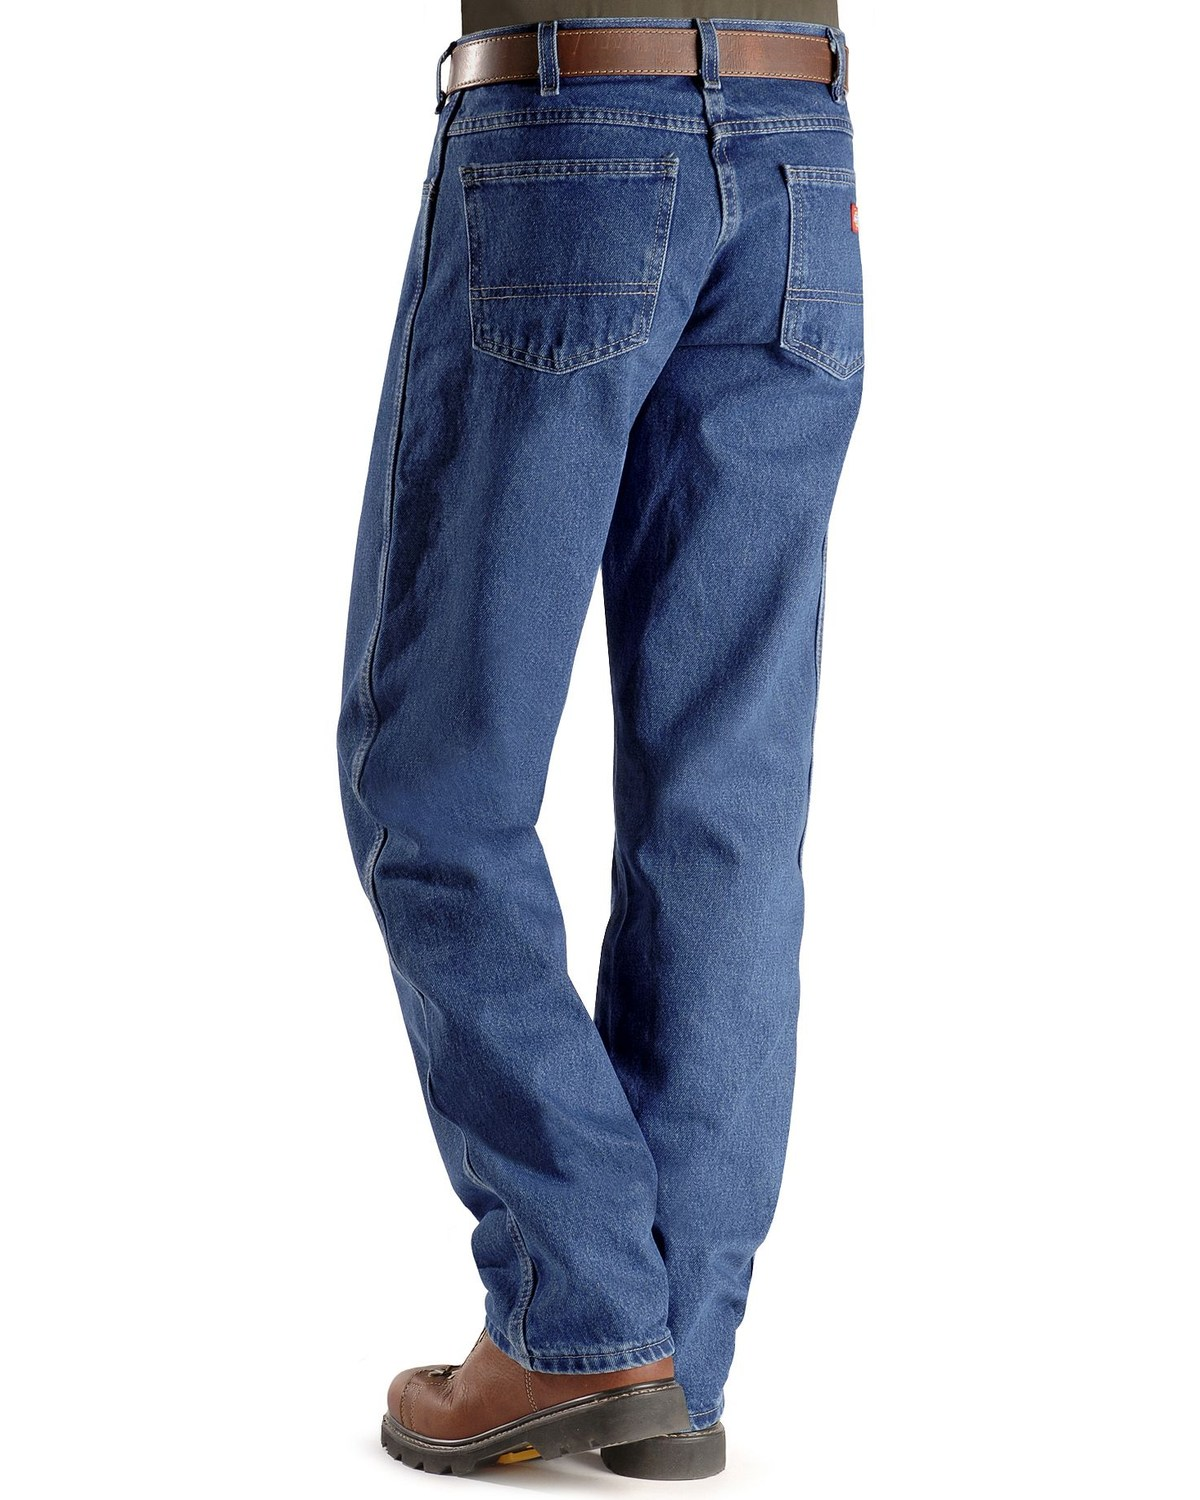 1cc19582 Zoomed Image Dickies Jeans - Relaxed Fit Work Jeans, Stonewash, hi-res.  Zoomed Image ...